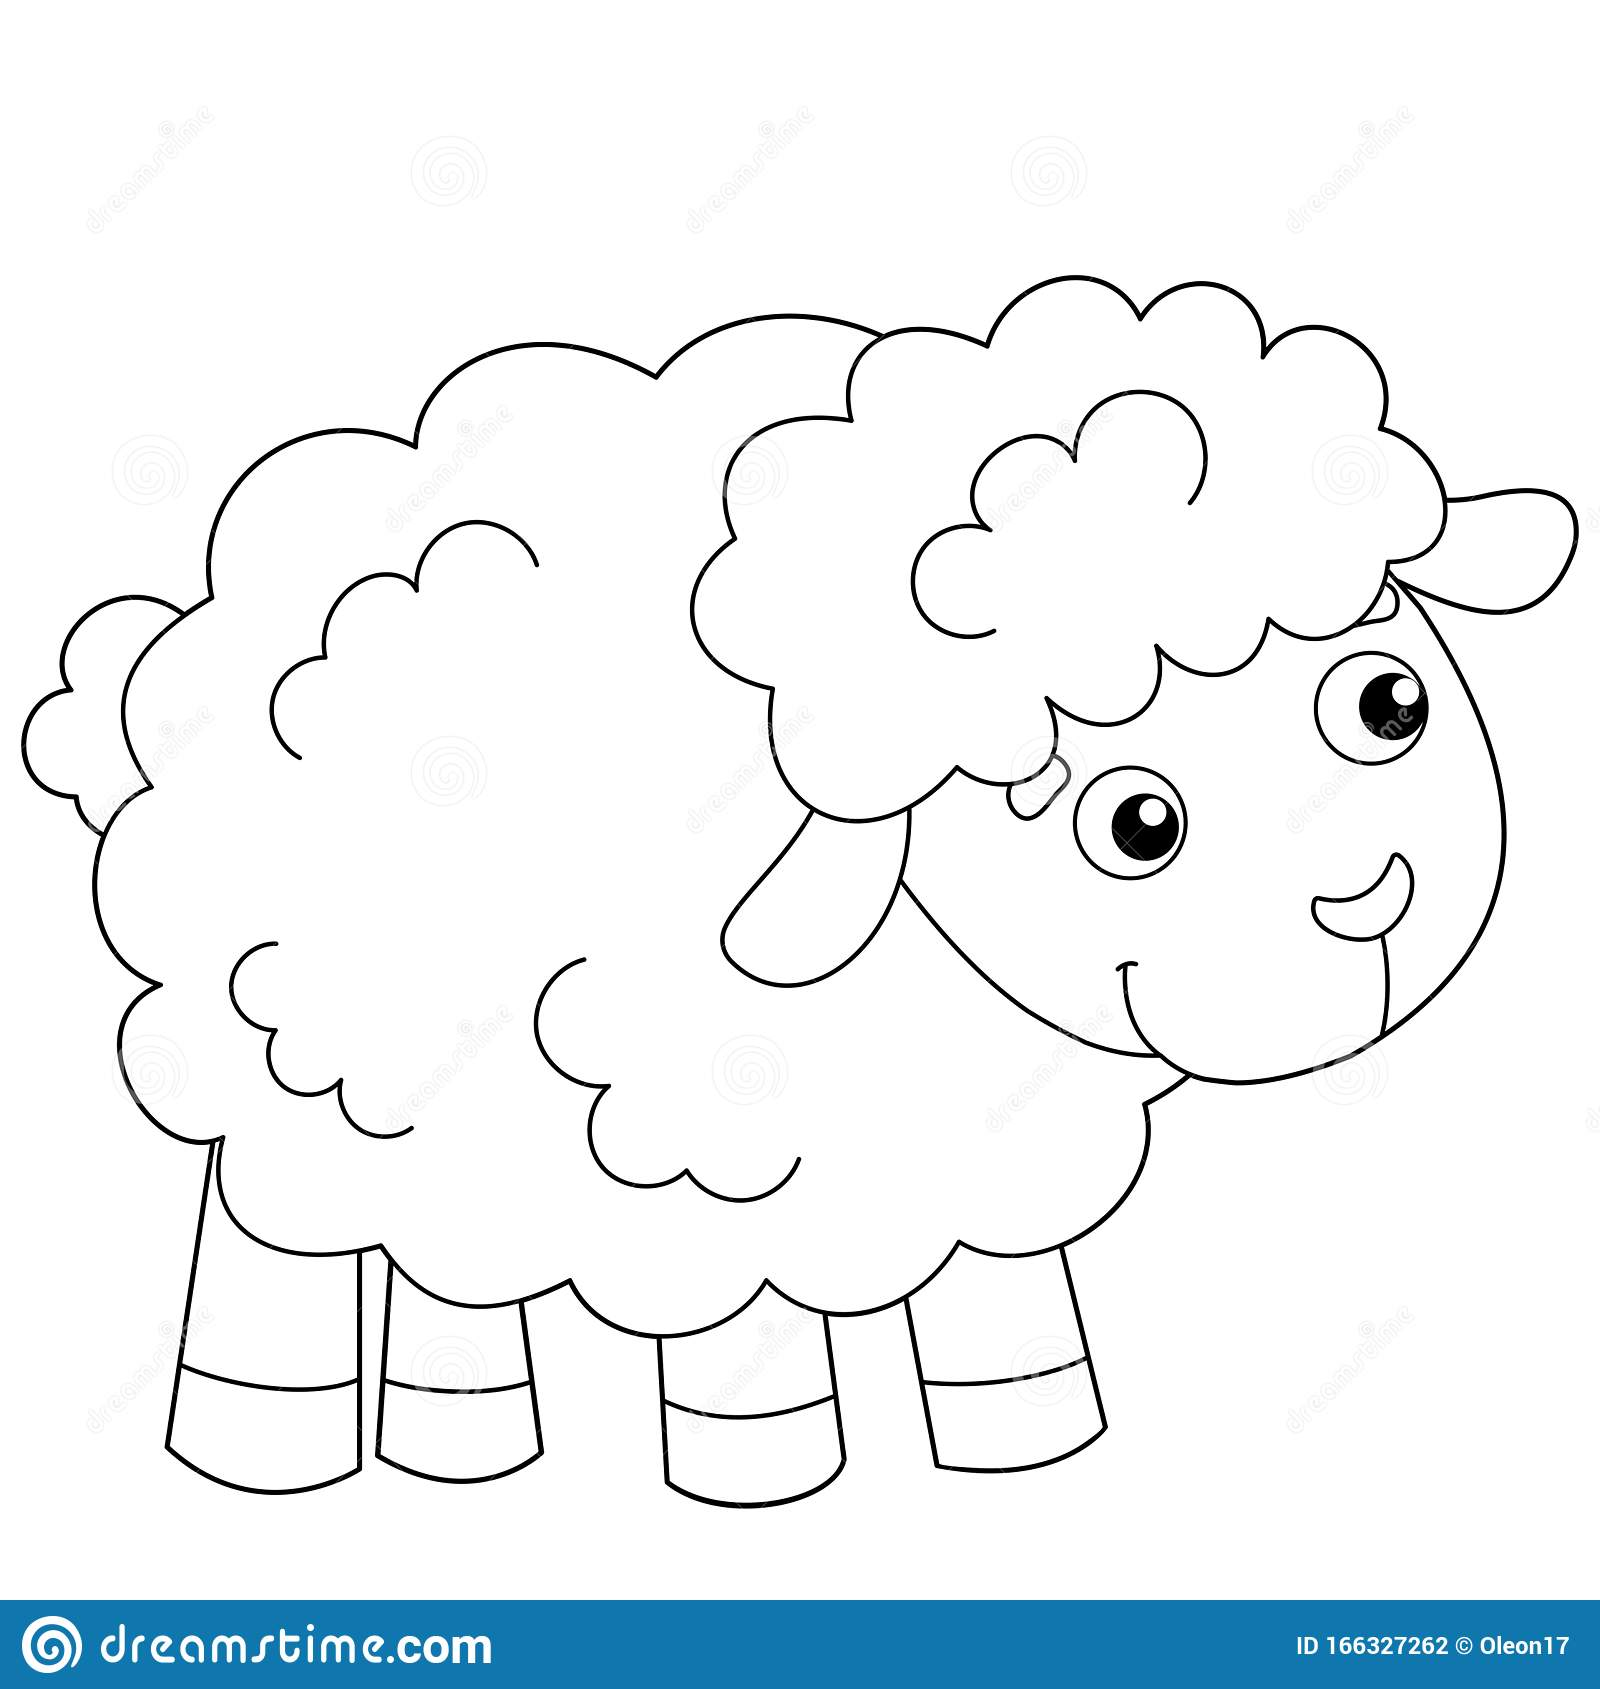 Coloring Page Outline Of Cartoon Sheep Or Lamb Farm Animals Coloring Book For Kids Stock Vector Illustration Of Horns Contour 166327262